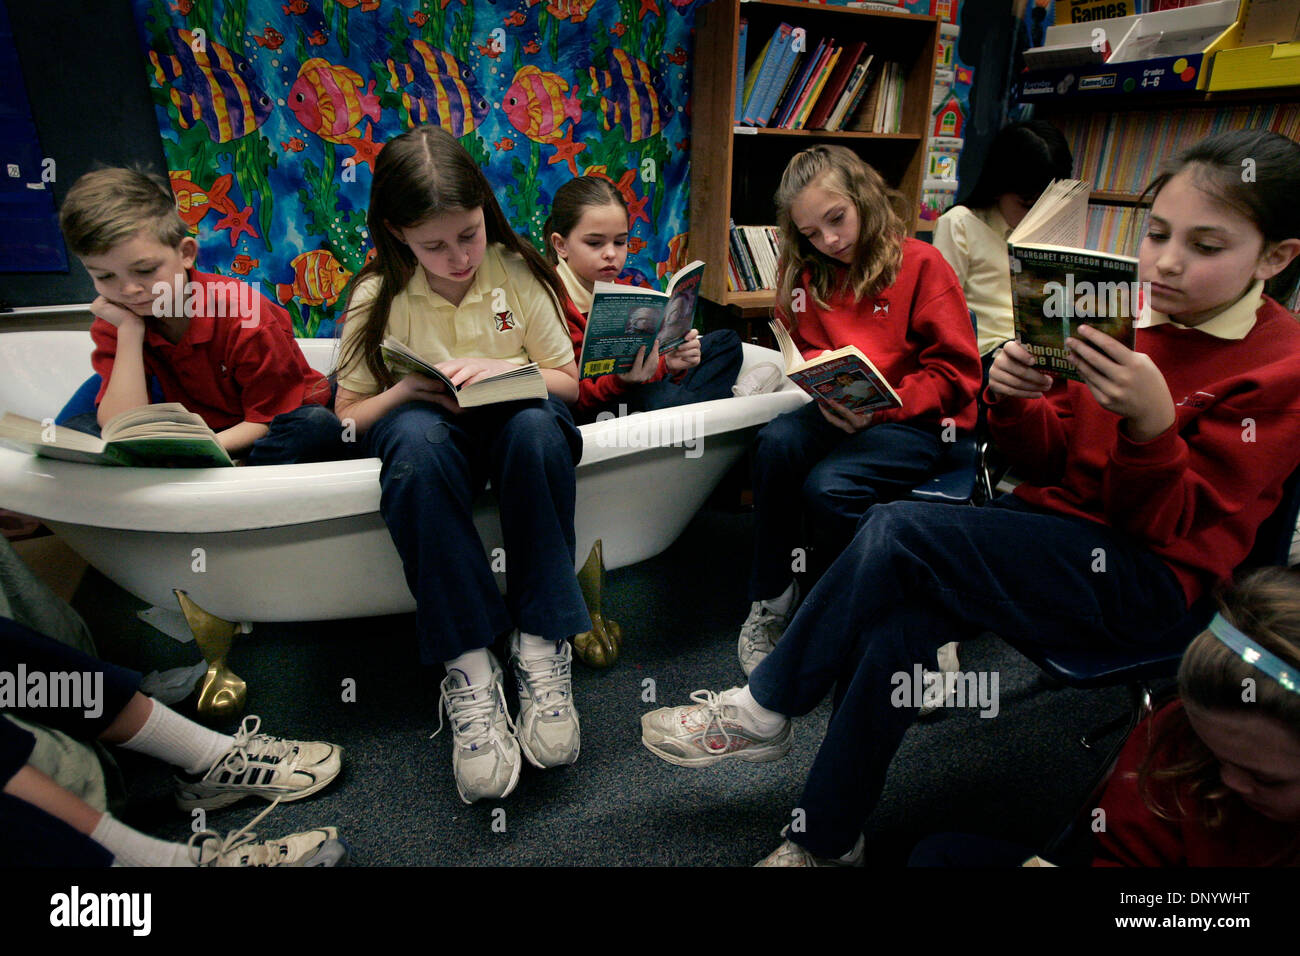 Feb 13, 2006; Shoreview, MN, USA; 'It (the tub) makes me feel like I can read anywhere,' says Vinny LaPanta, 9, as he reads above in a claw foot tub along with classmates, l-r, Alex Eckert, 9, Katie Moynagh, 9, Natalie TerEick, 10, and Nicolina Cecere, 9, in Ryan Pajak's fourth grade class at St. Odilia's Schoool in Shoreview, MN, Monday, February 13, 2006.  There are rules to havi - Stock Image